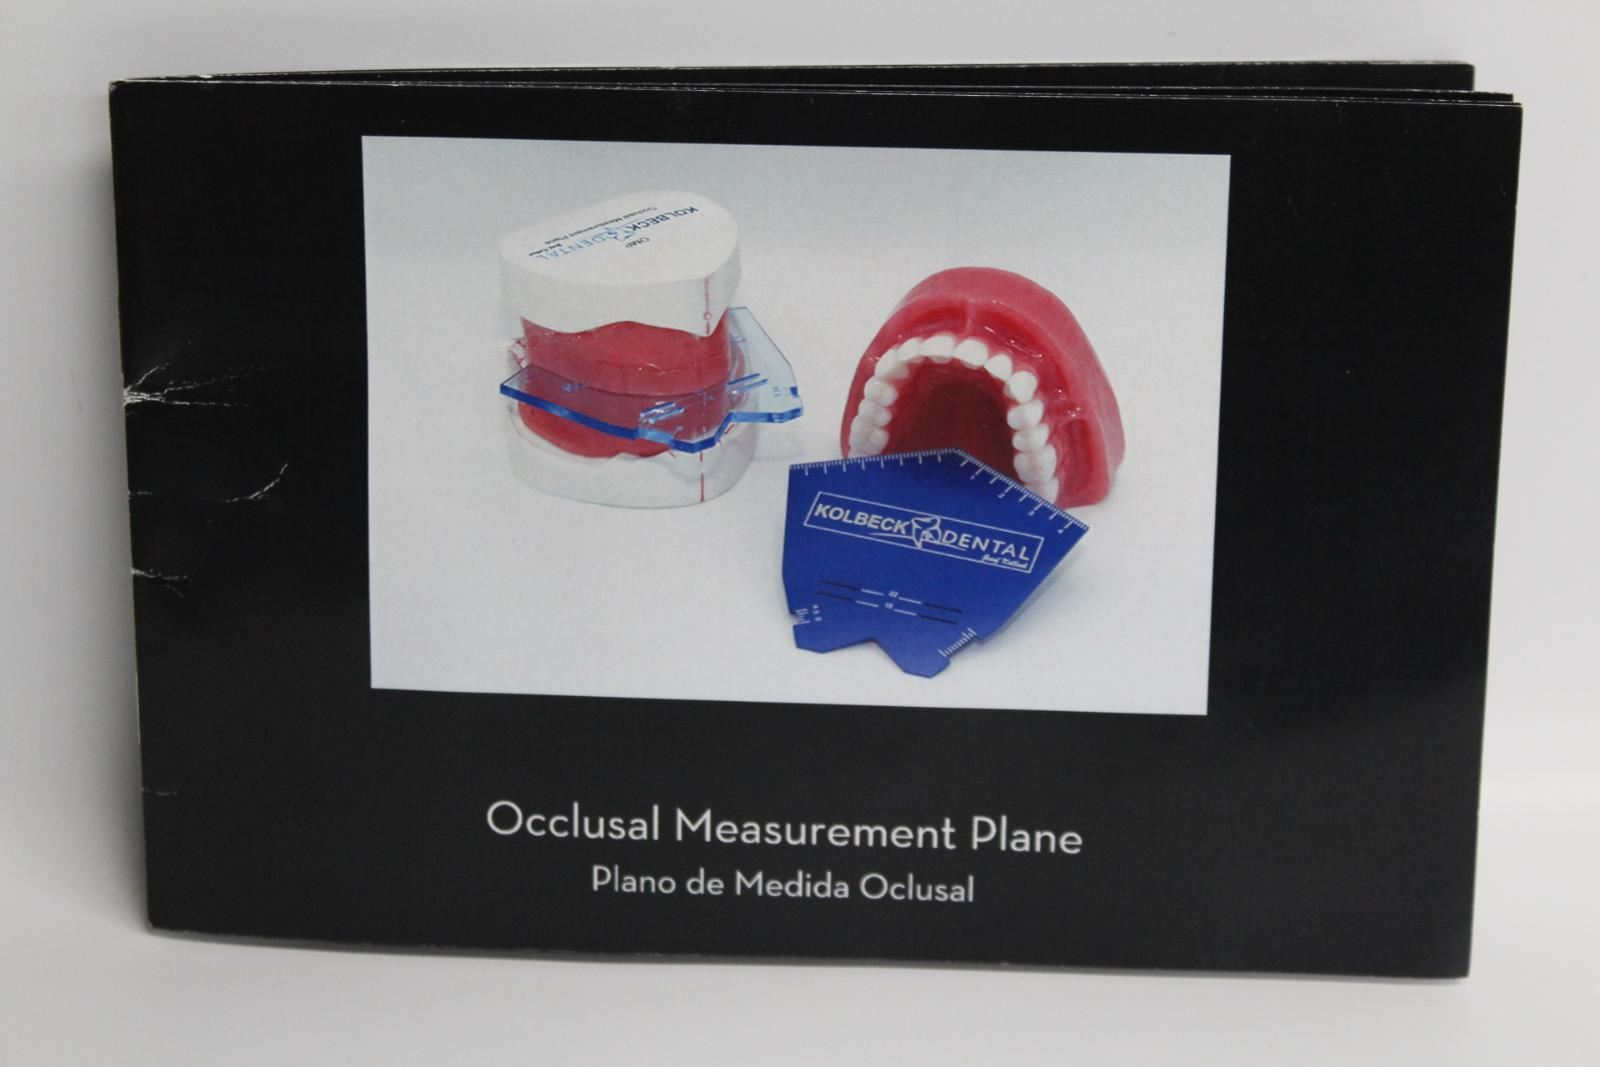 KOLBECK Blue Dental Teeth Occlusal Measurement Plane With Instruction Guide